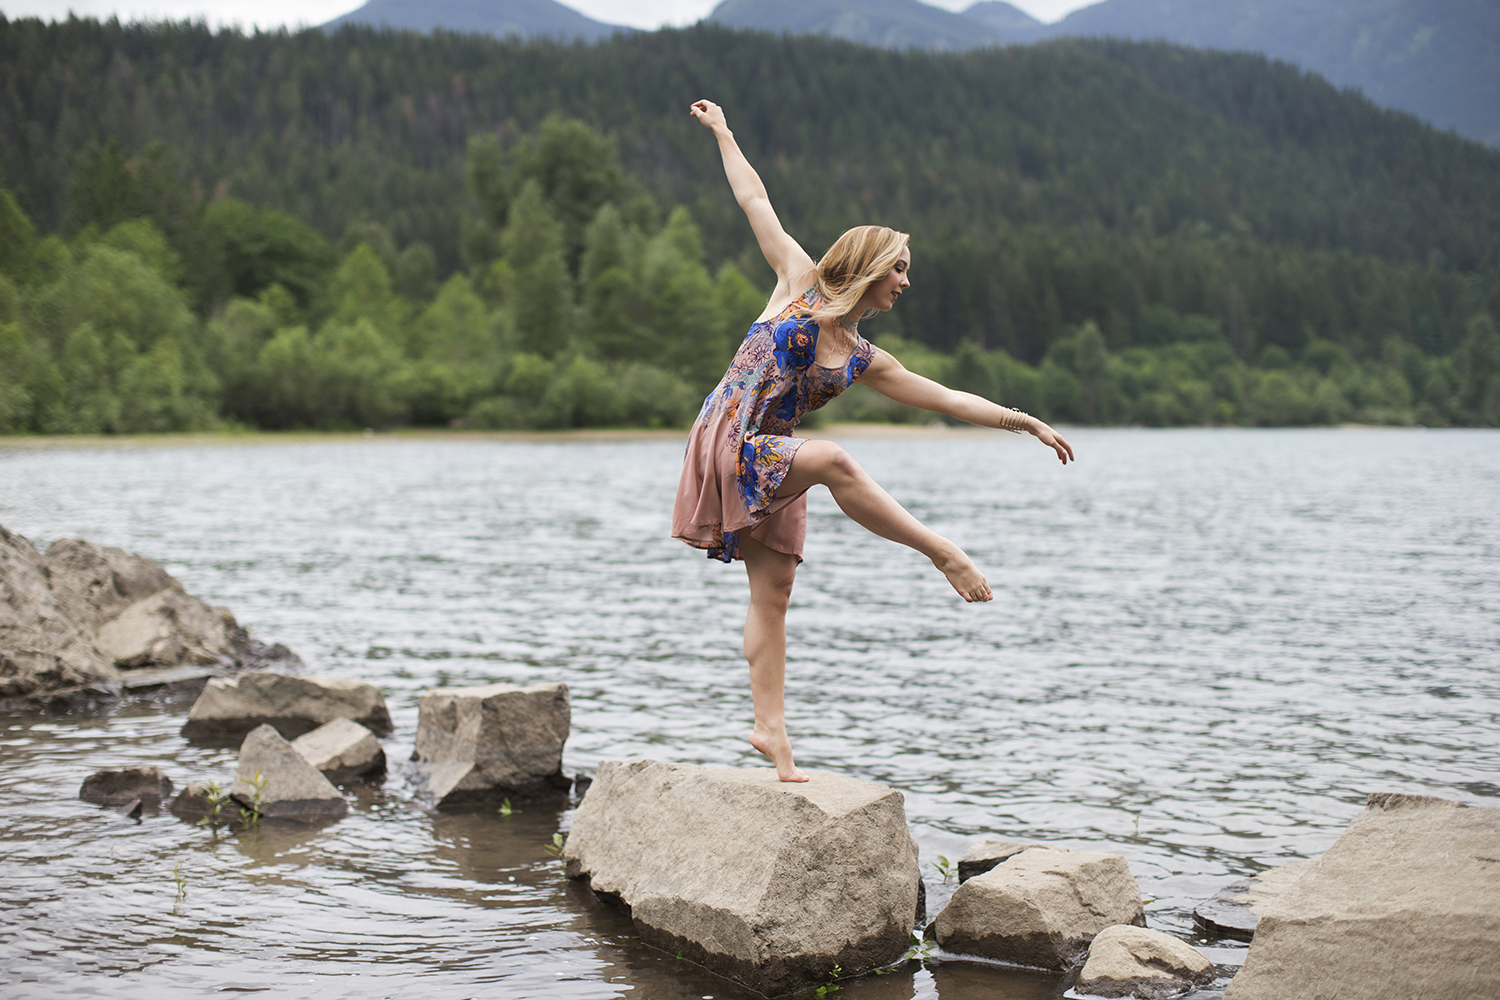 Michelle Moore photographs for Free People at Rattlesnake Lake Seattle Washington